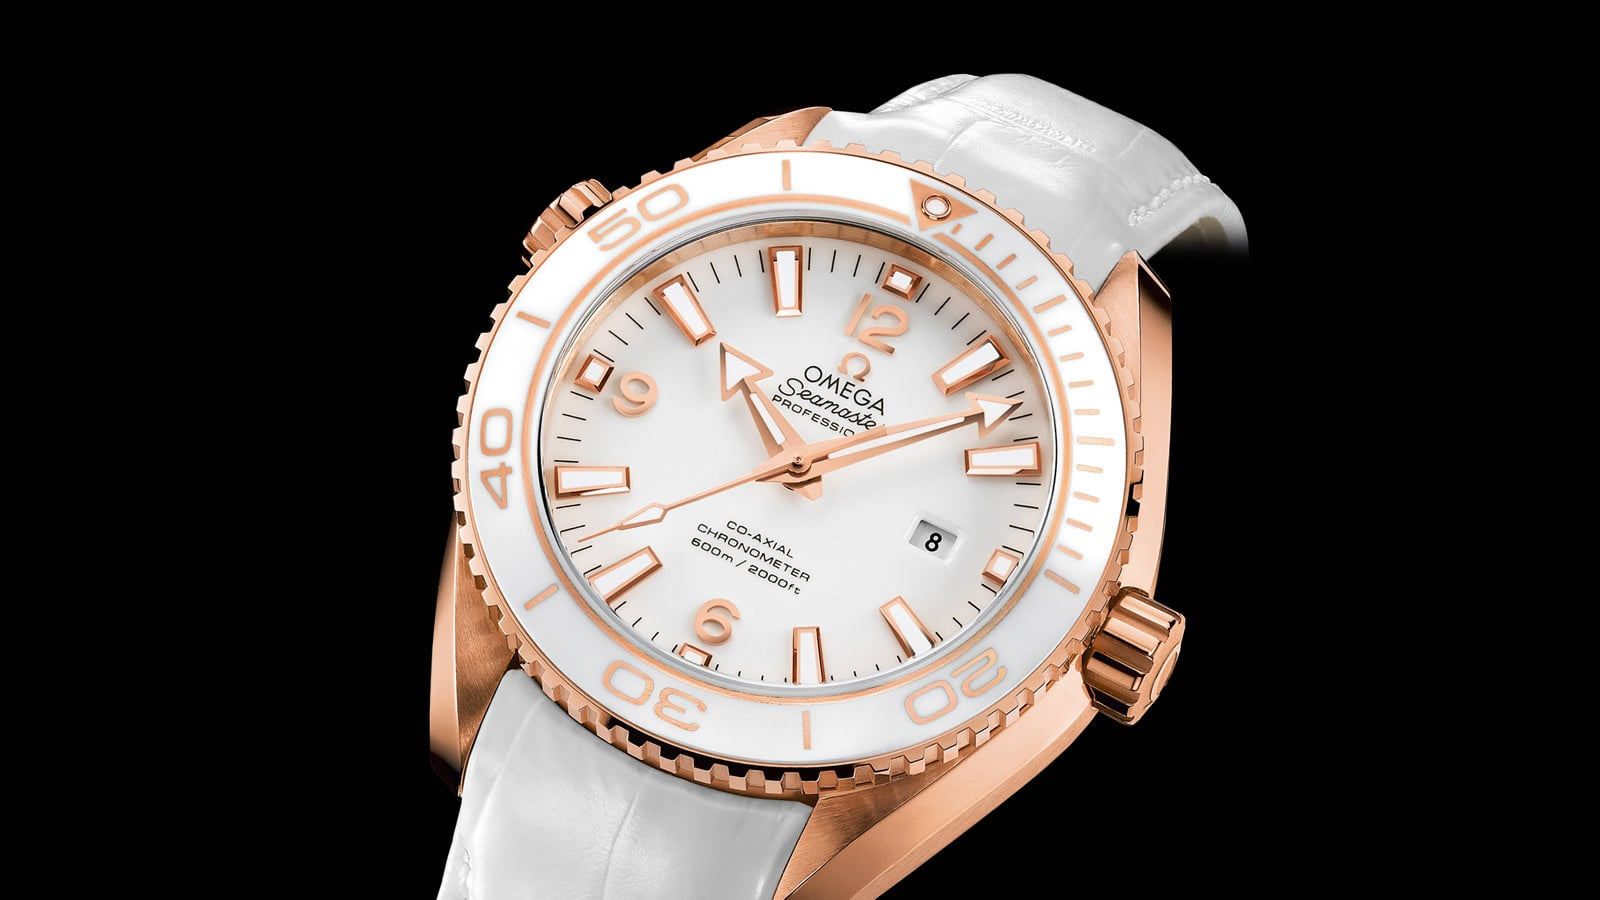 THE OMEGA PLANET OCEAN CERAGOLD™ WHITE PLANET ST. MORITZ